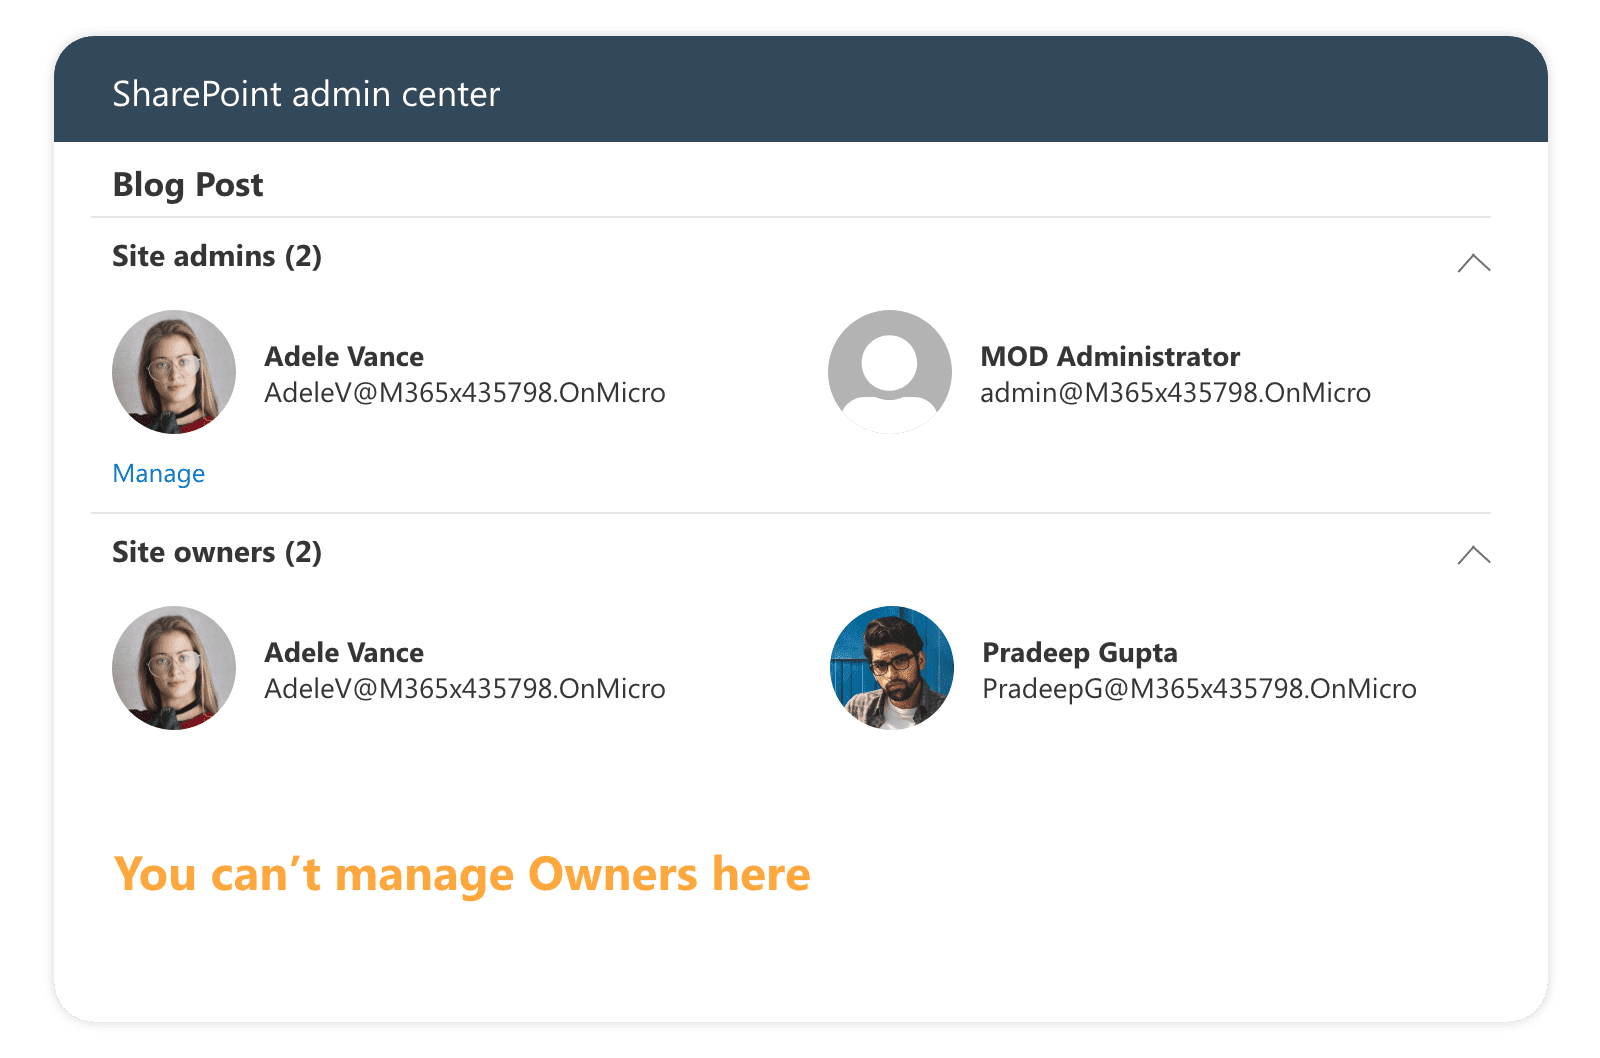 managing admins in SharePoint admin center